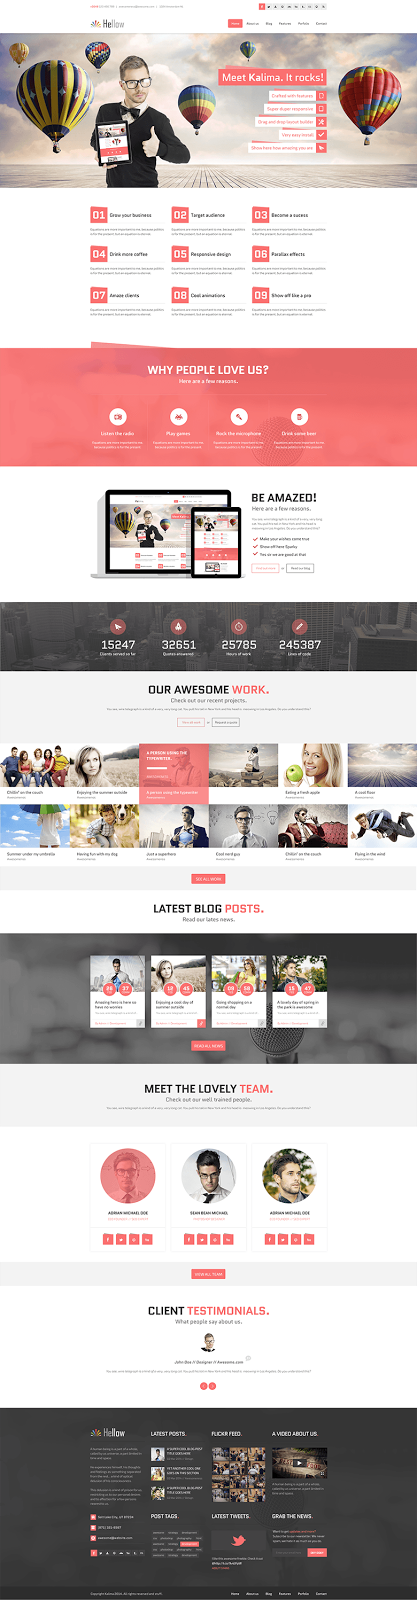 Hellow Website PSD Template